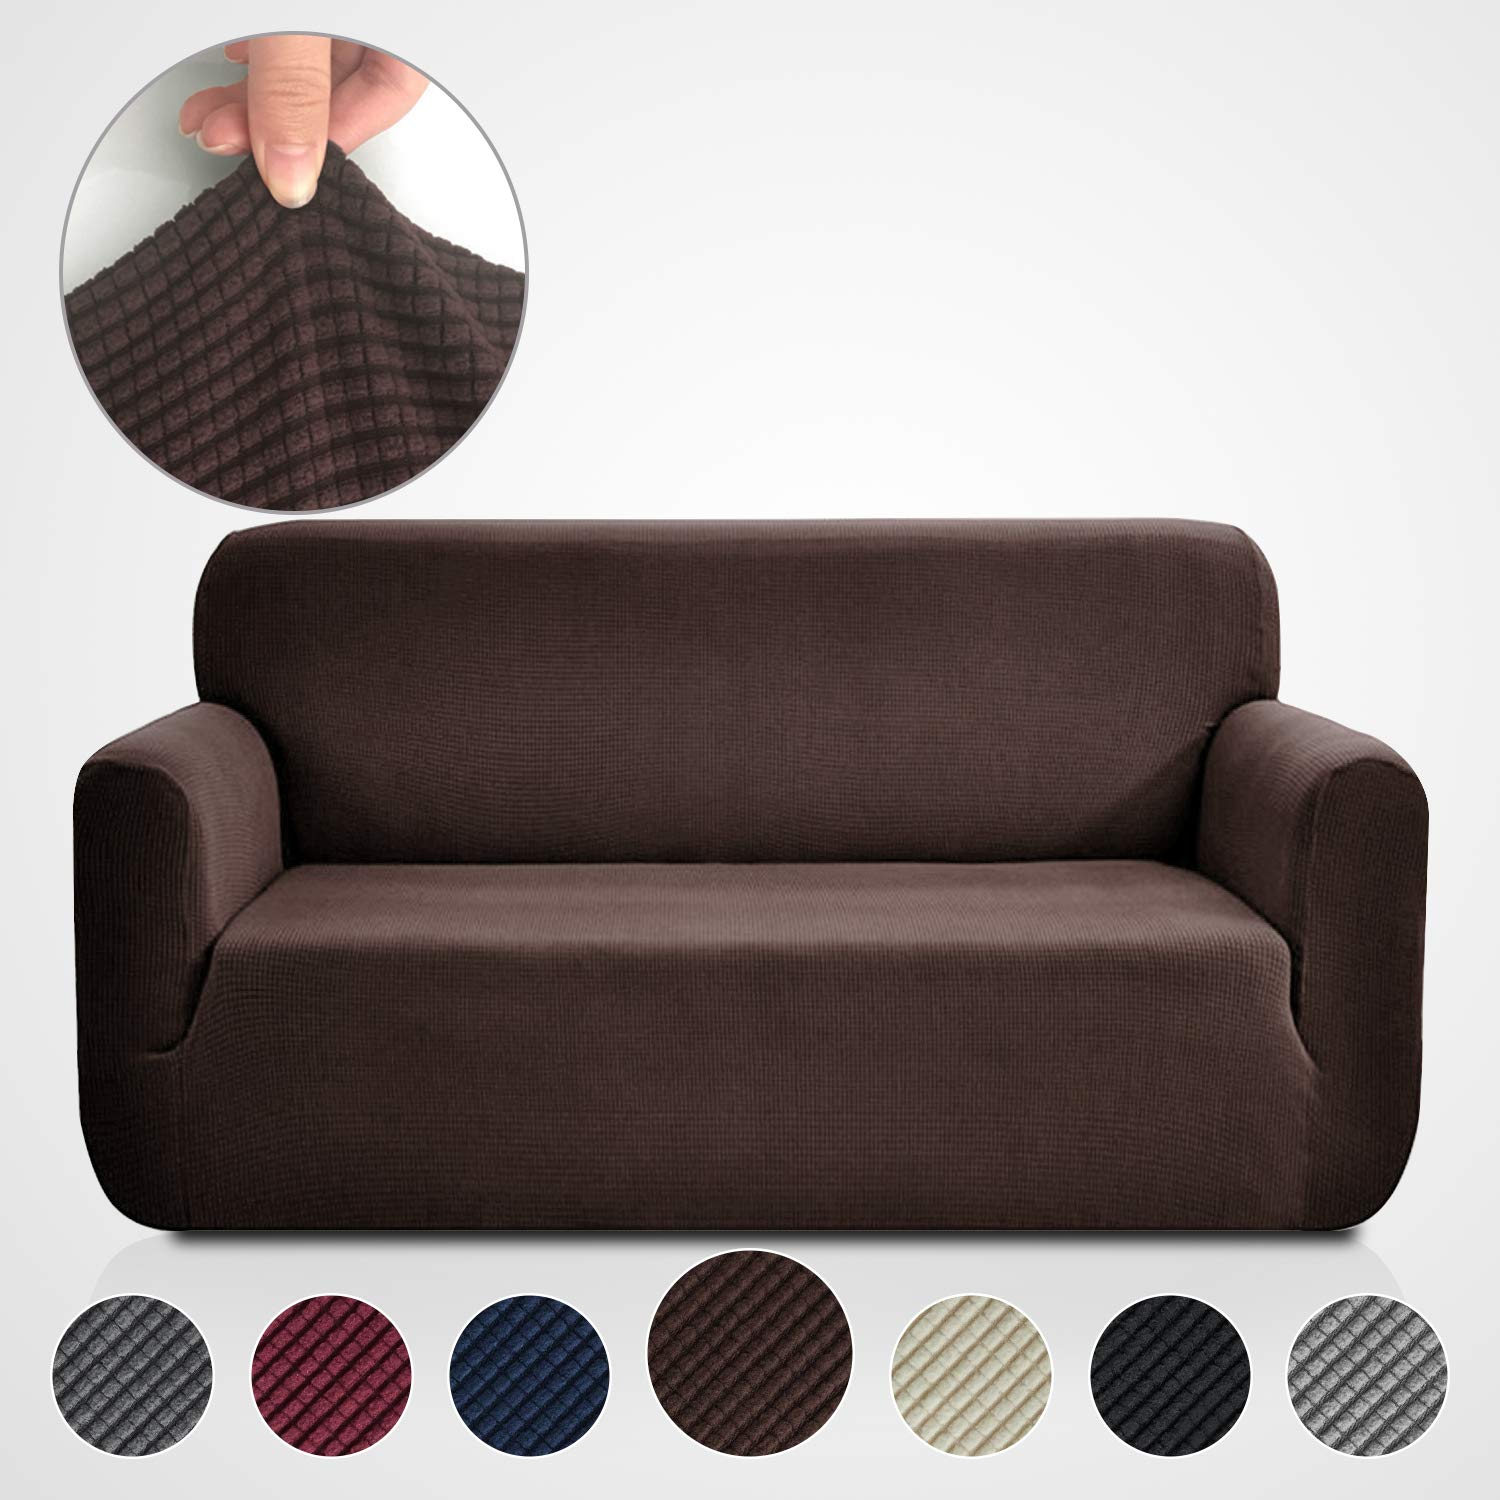 Magnificent Rose Home Fashion Rhf Jacquard Stretch Sofa Cover Slipcover For Leather Couch Polyester Spandex Sofa Slipcovercouch Cover For Dogs 1 Piece Sofa Ibusinesslaw Wood Chair Design Ideas Ibusinesslaworg